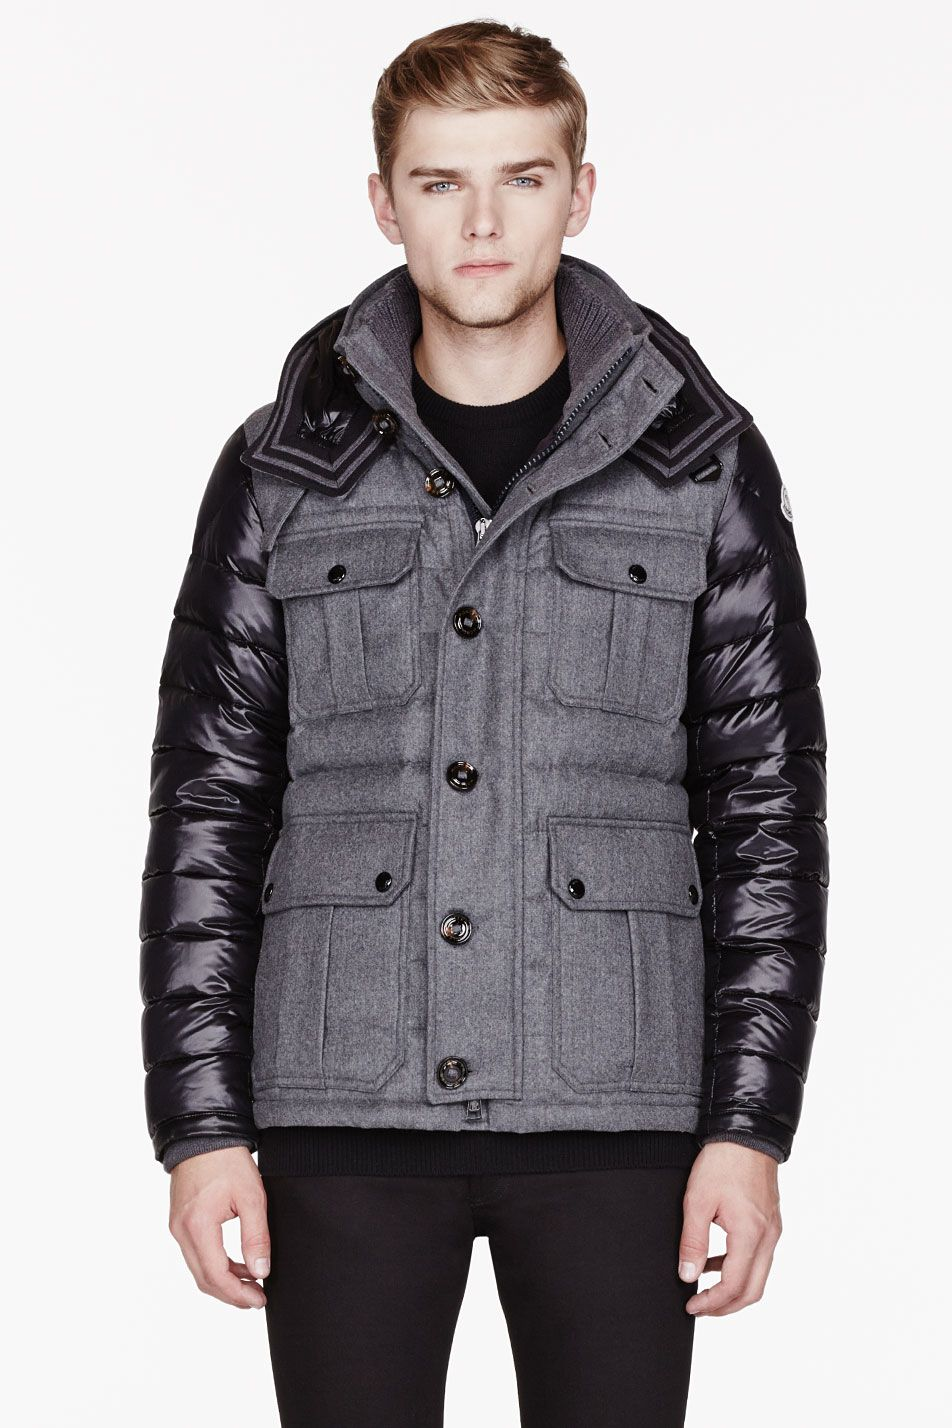 MONCLER Grey Wool & Nylon Quilted Nicolas jacket, Available in our Boston and Cambridge location!